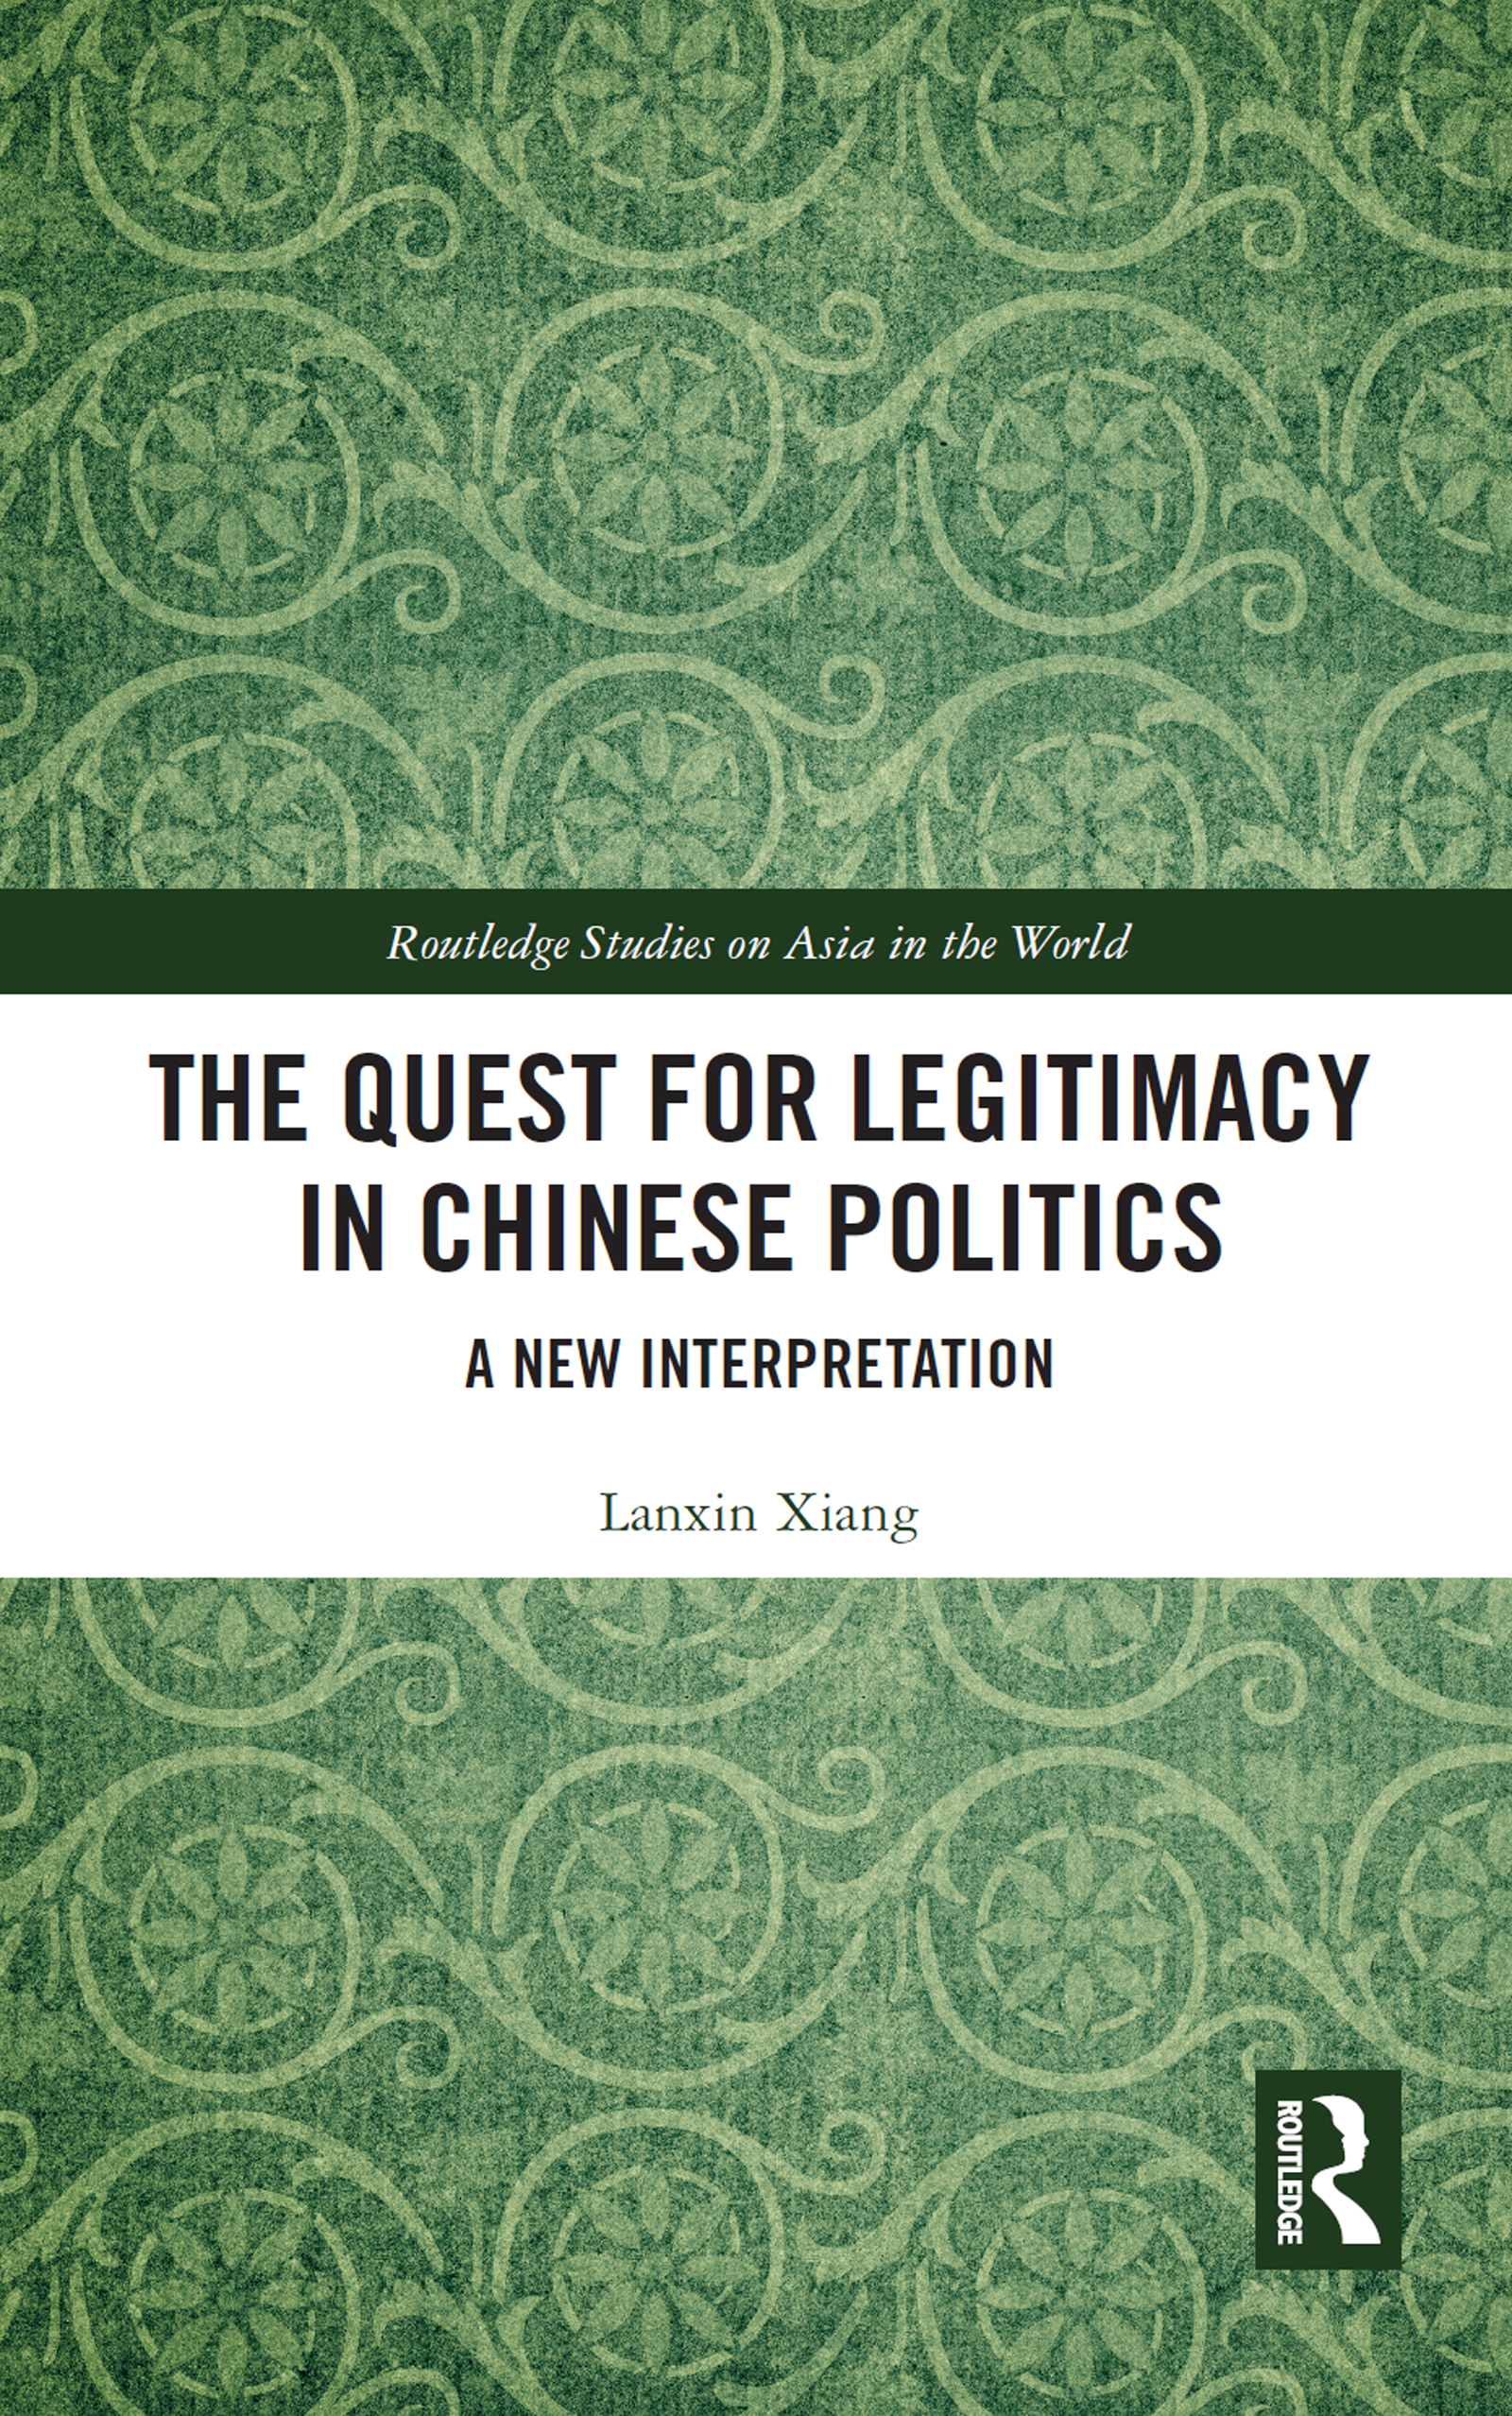 The Quest for Legitimacy in Chinese Politics